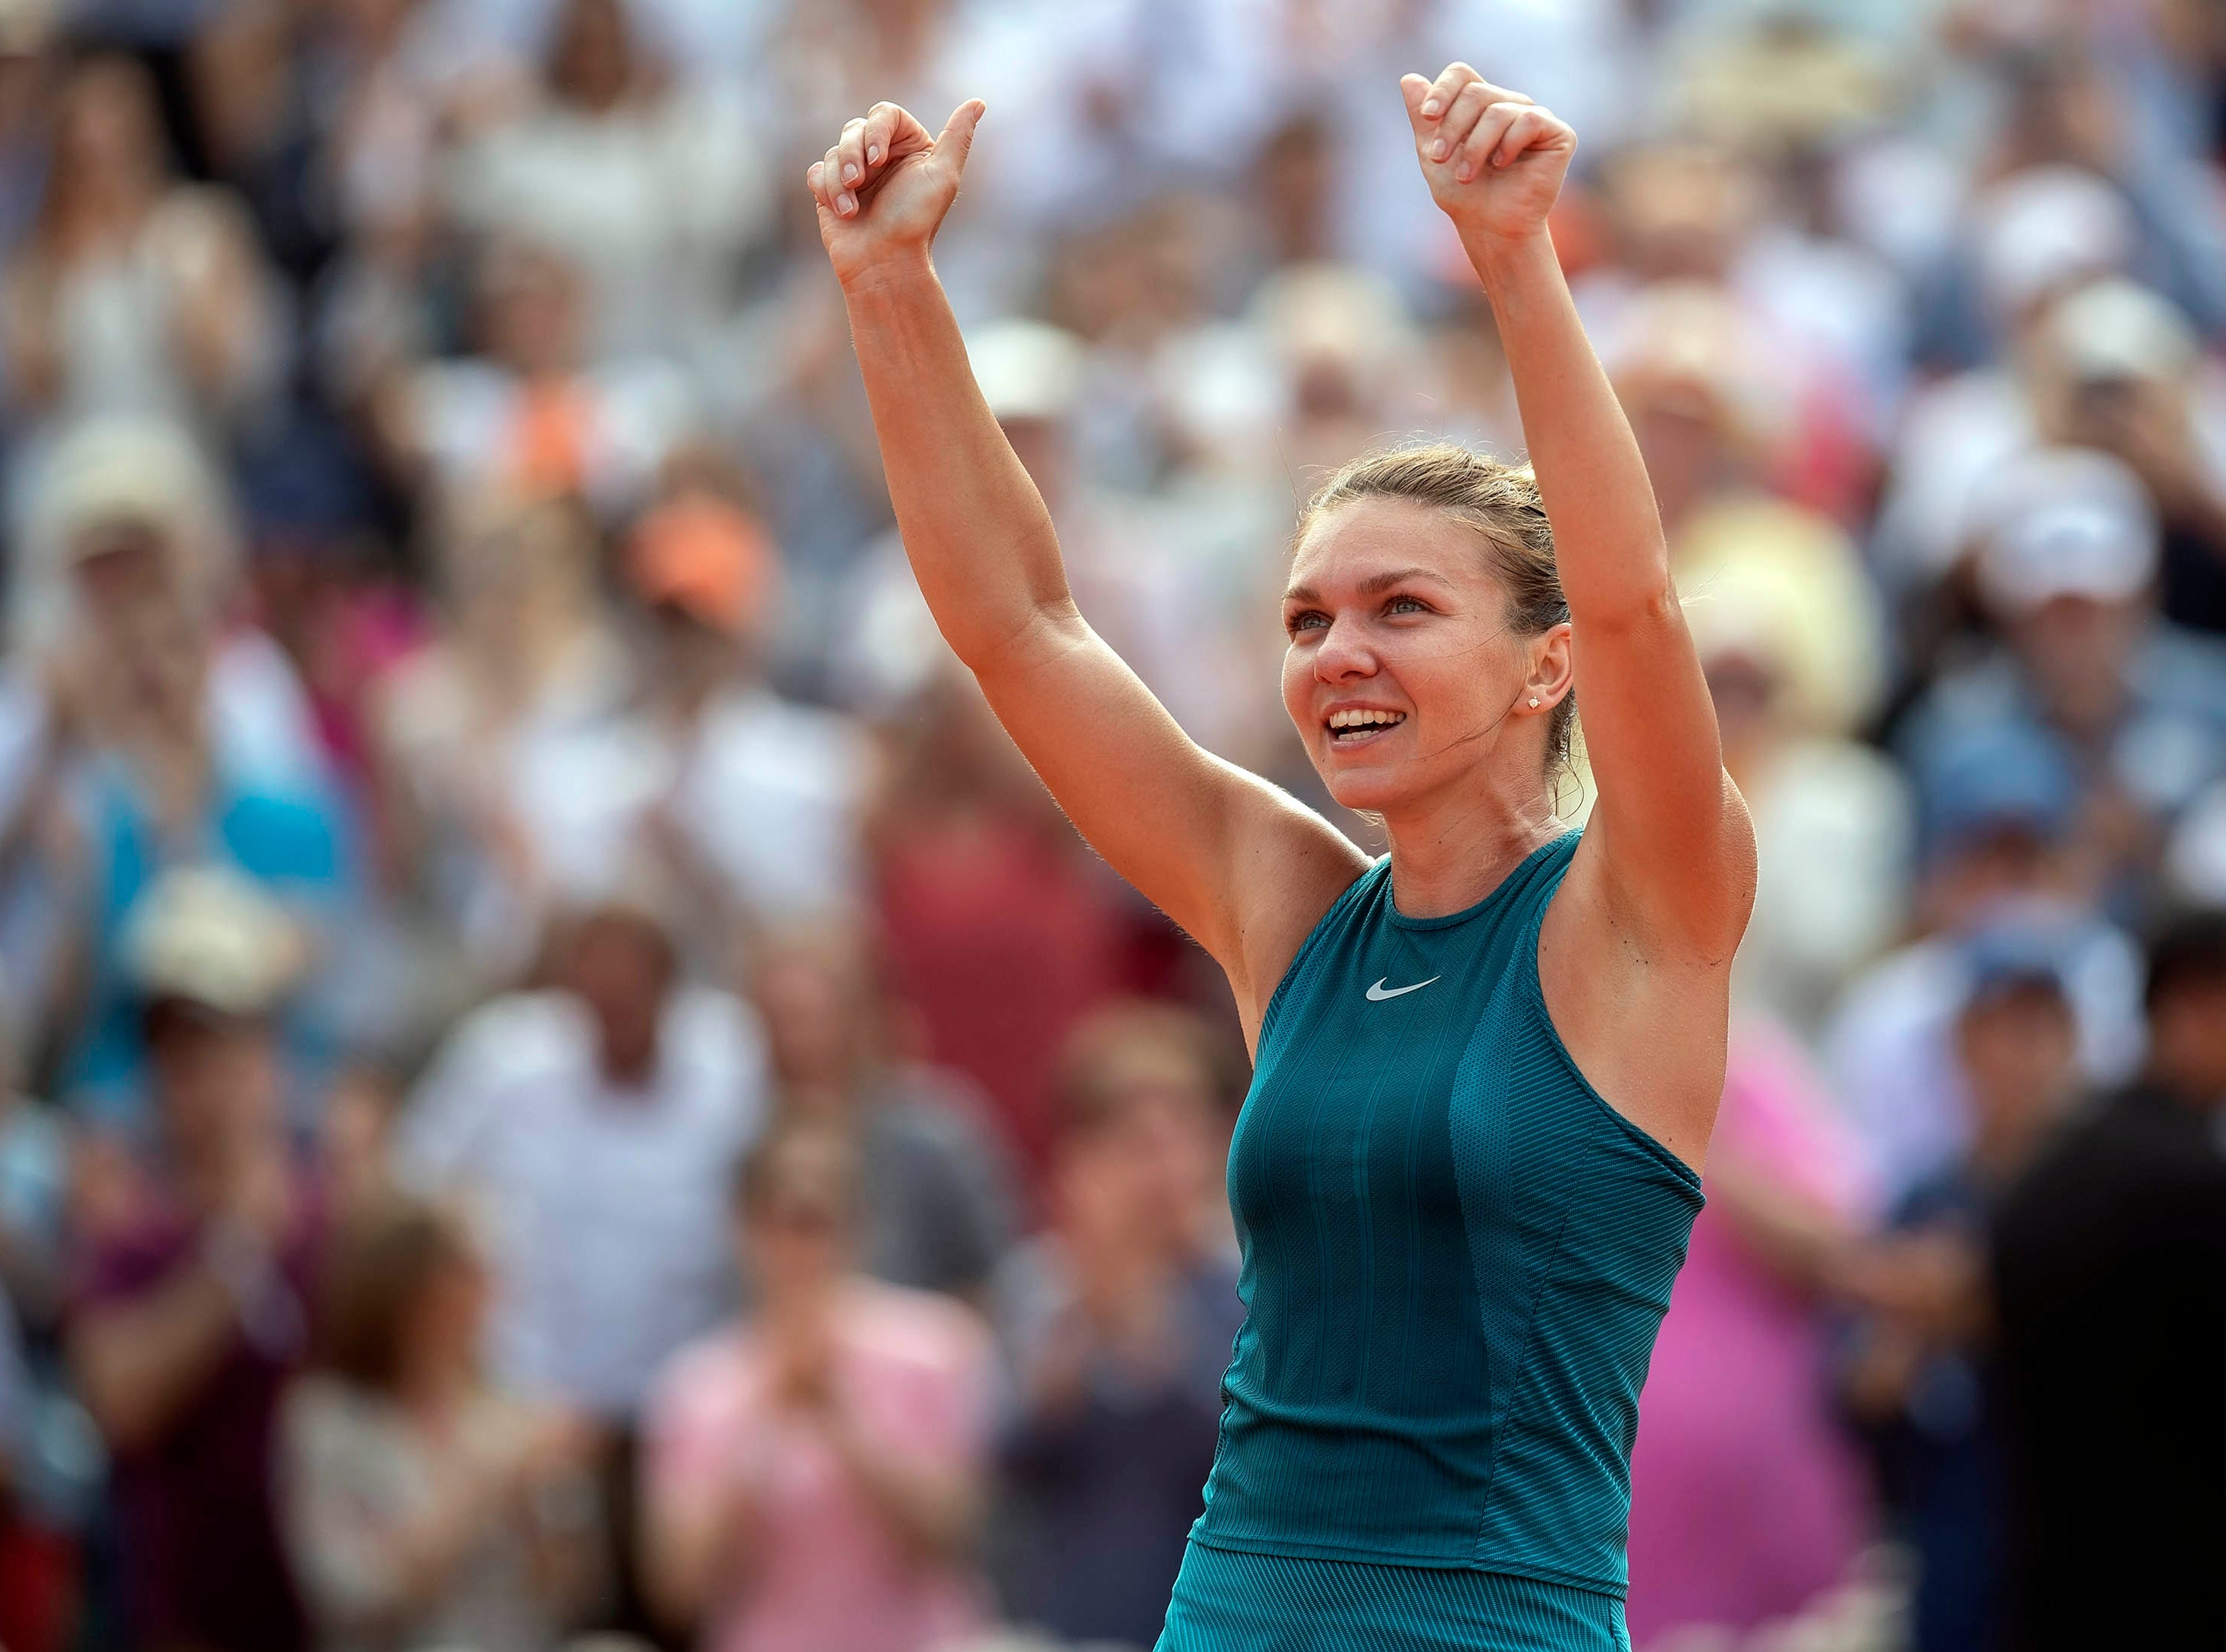 June 9: Simona Halep (ROU) celebrates match point against Sloane Stephens (USA) in the French Open final.